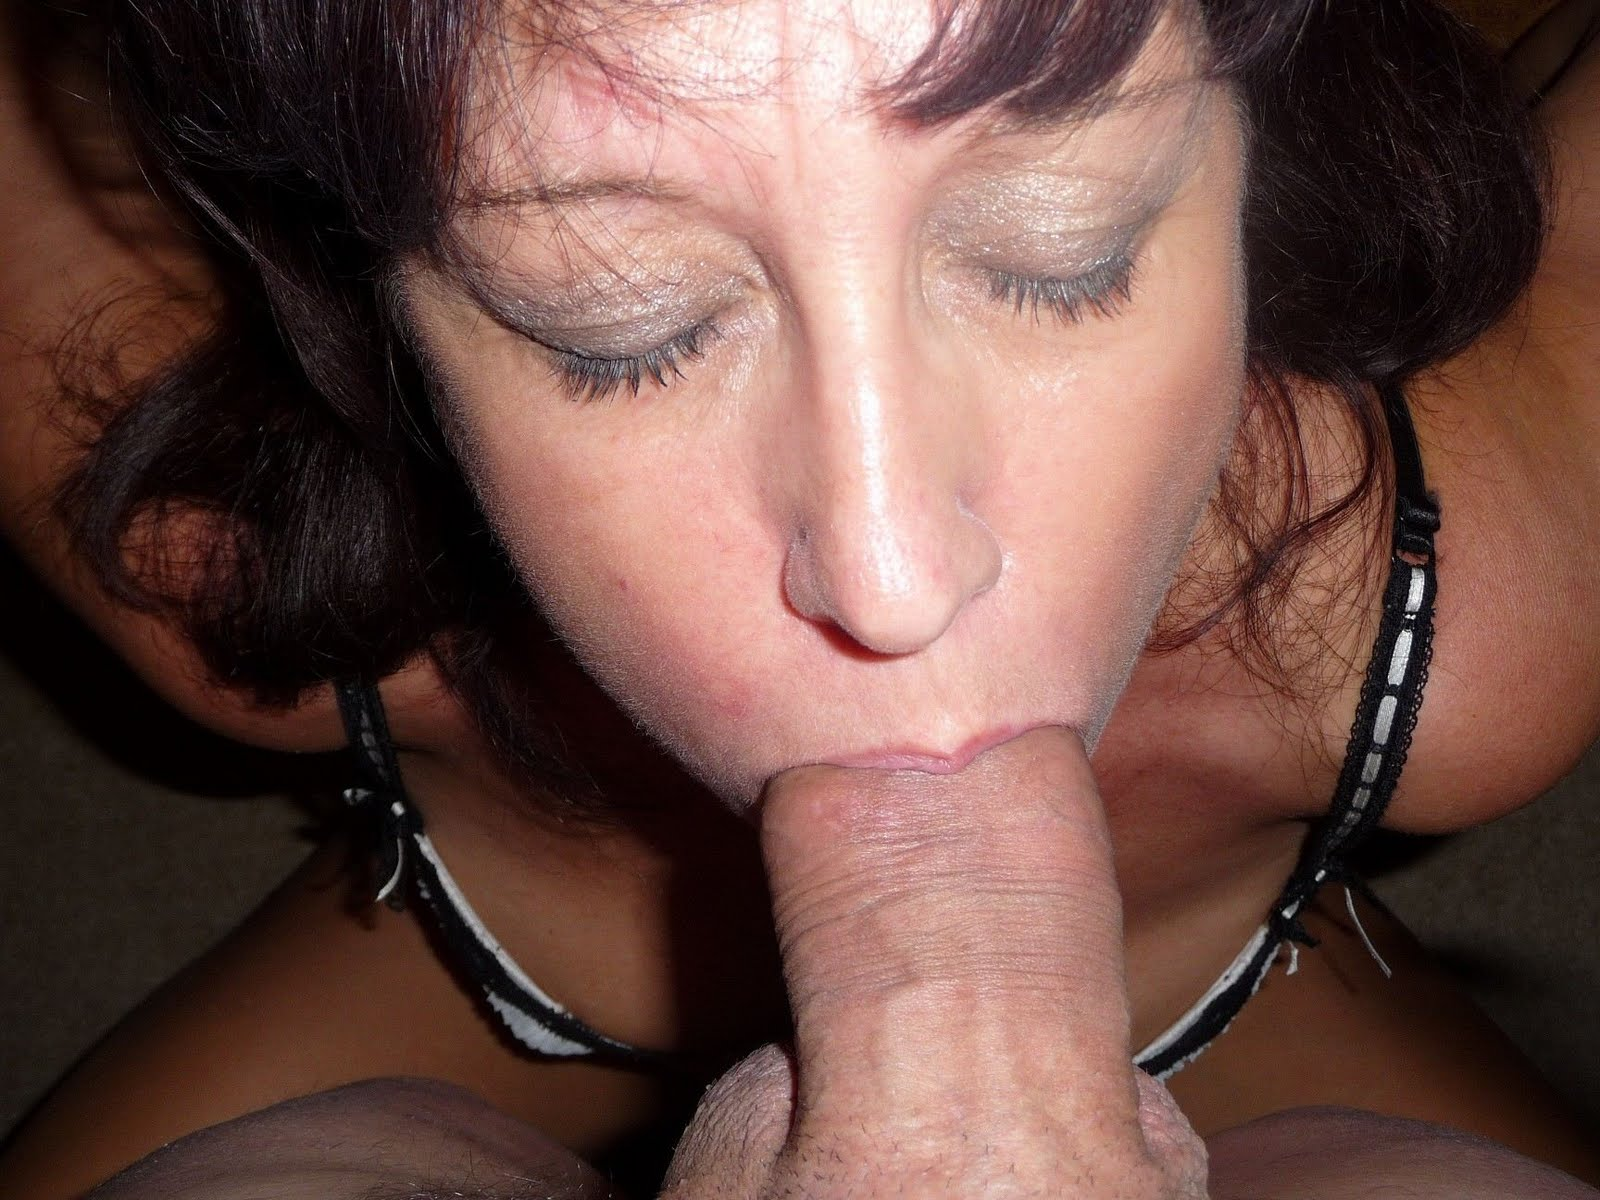 Huge dildo in ladies tube